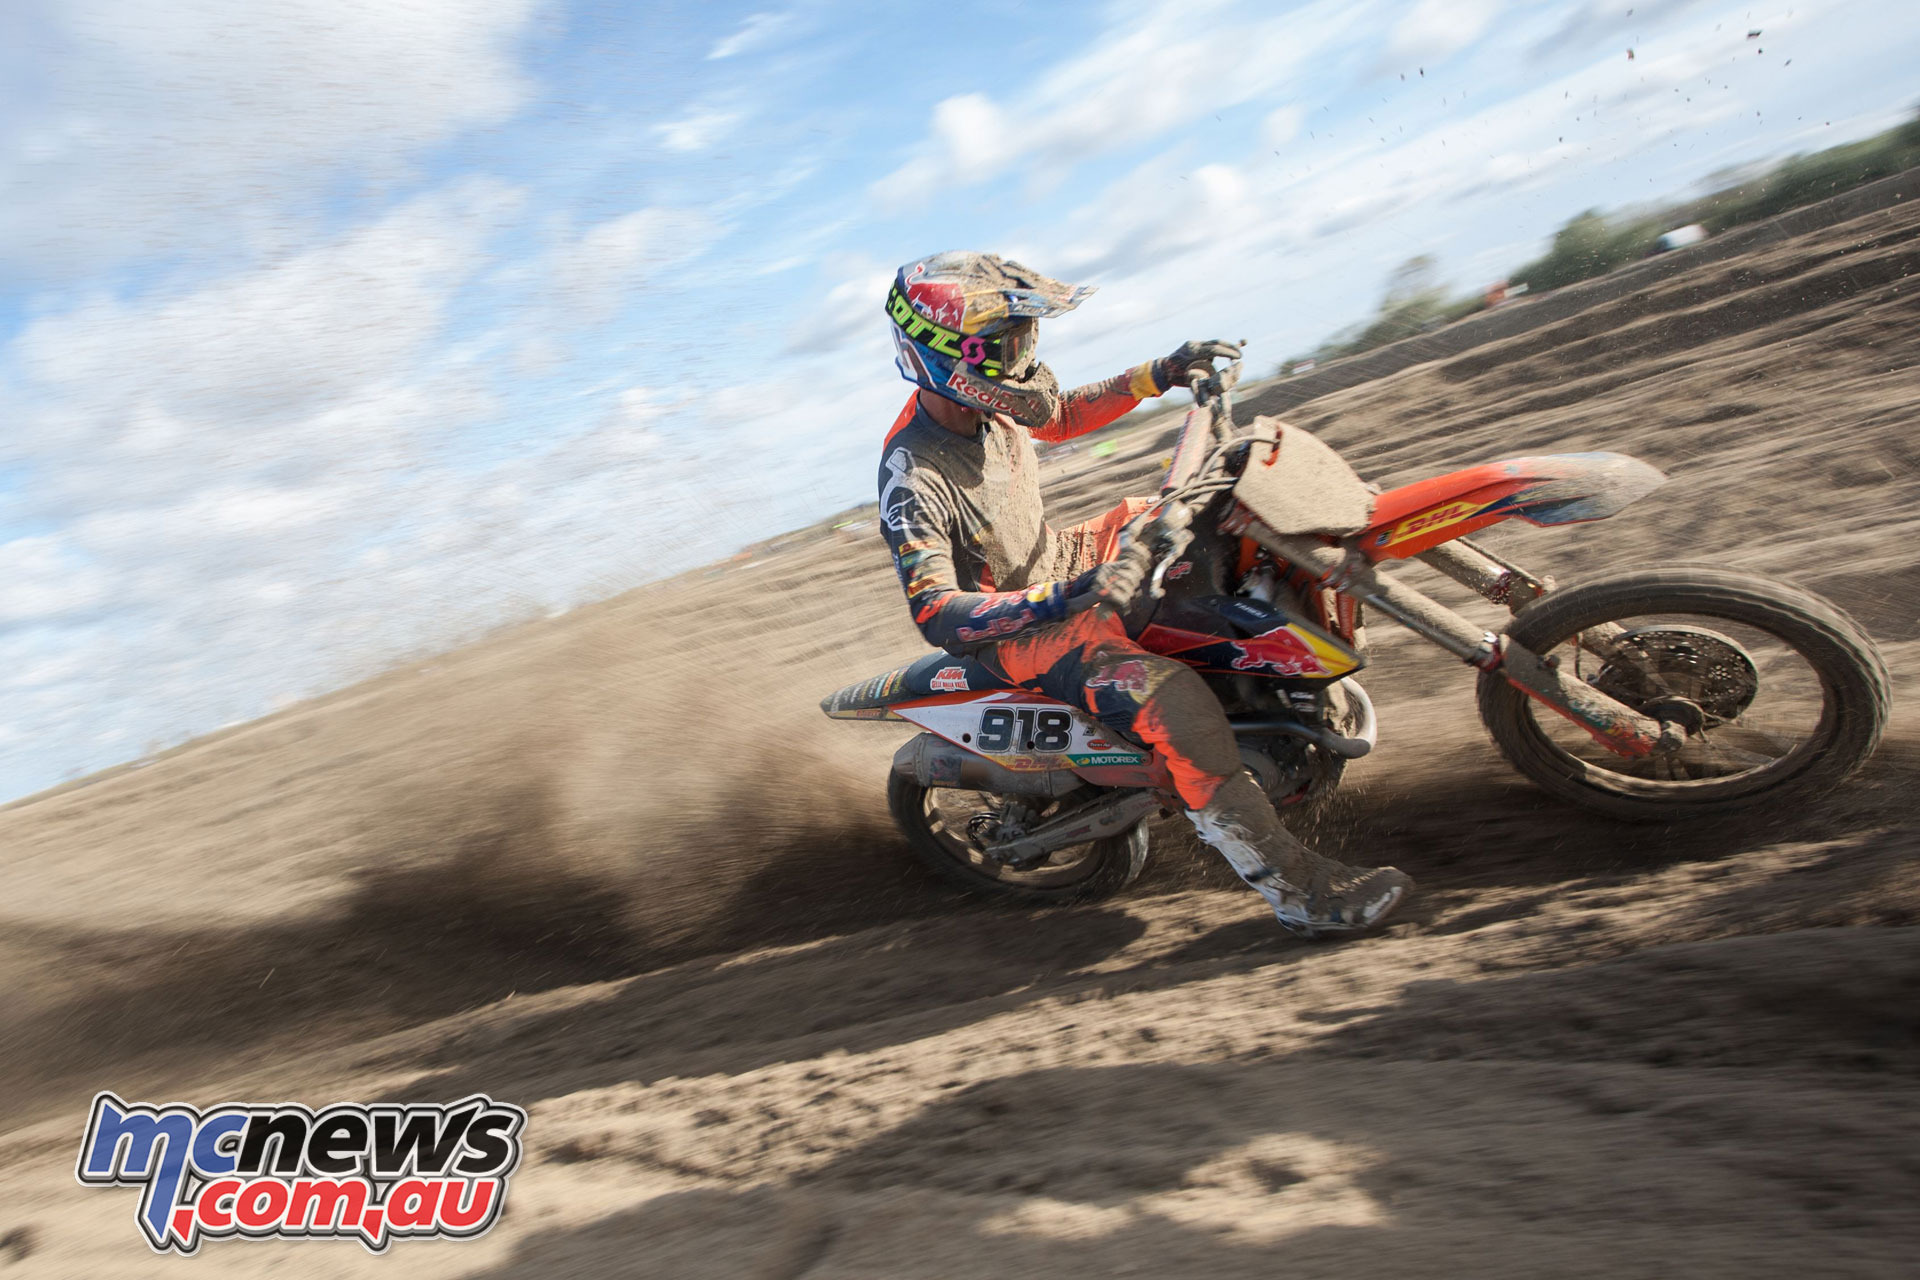 Camille Chapeliere Red Bull KTM Factory Racing Loon Plage Beach Race